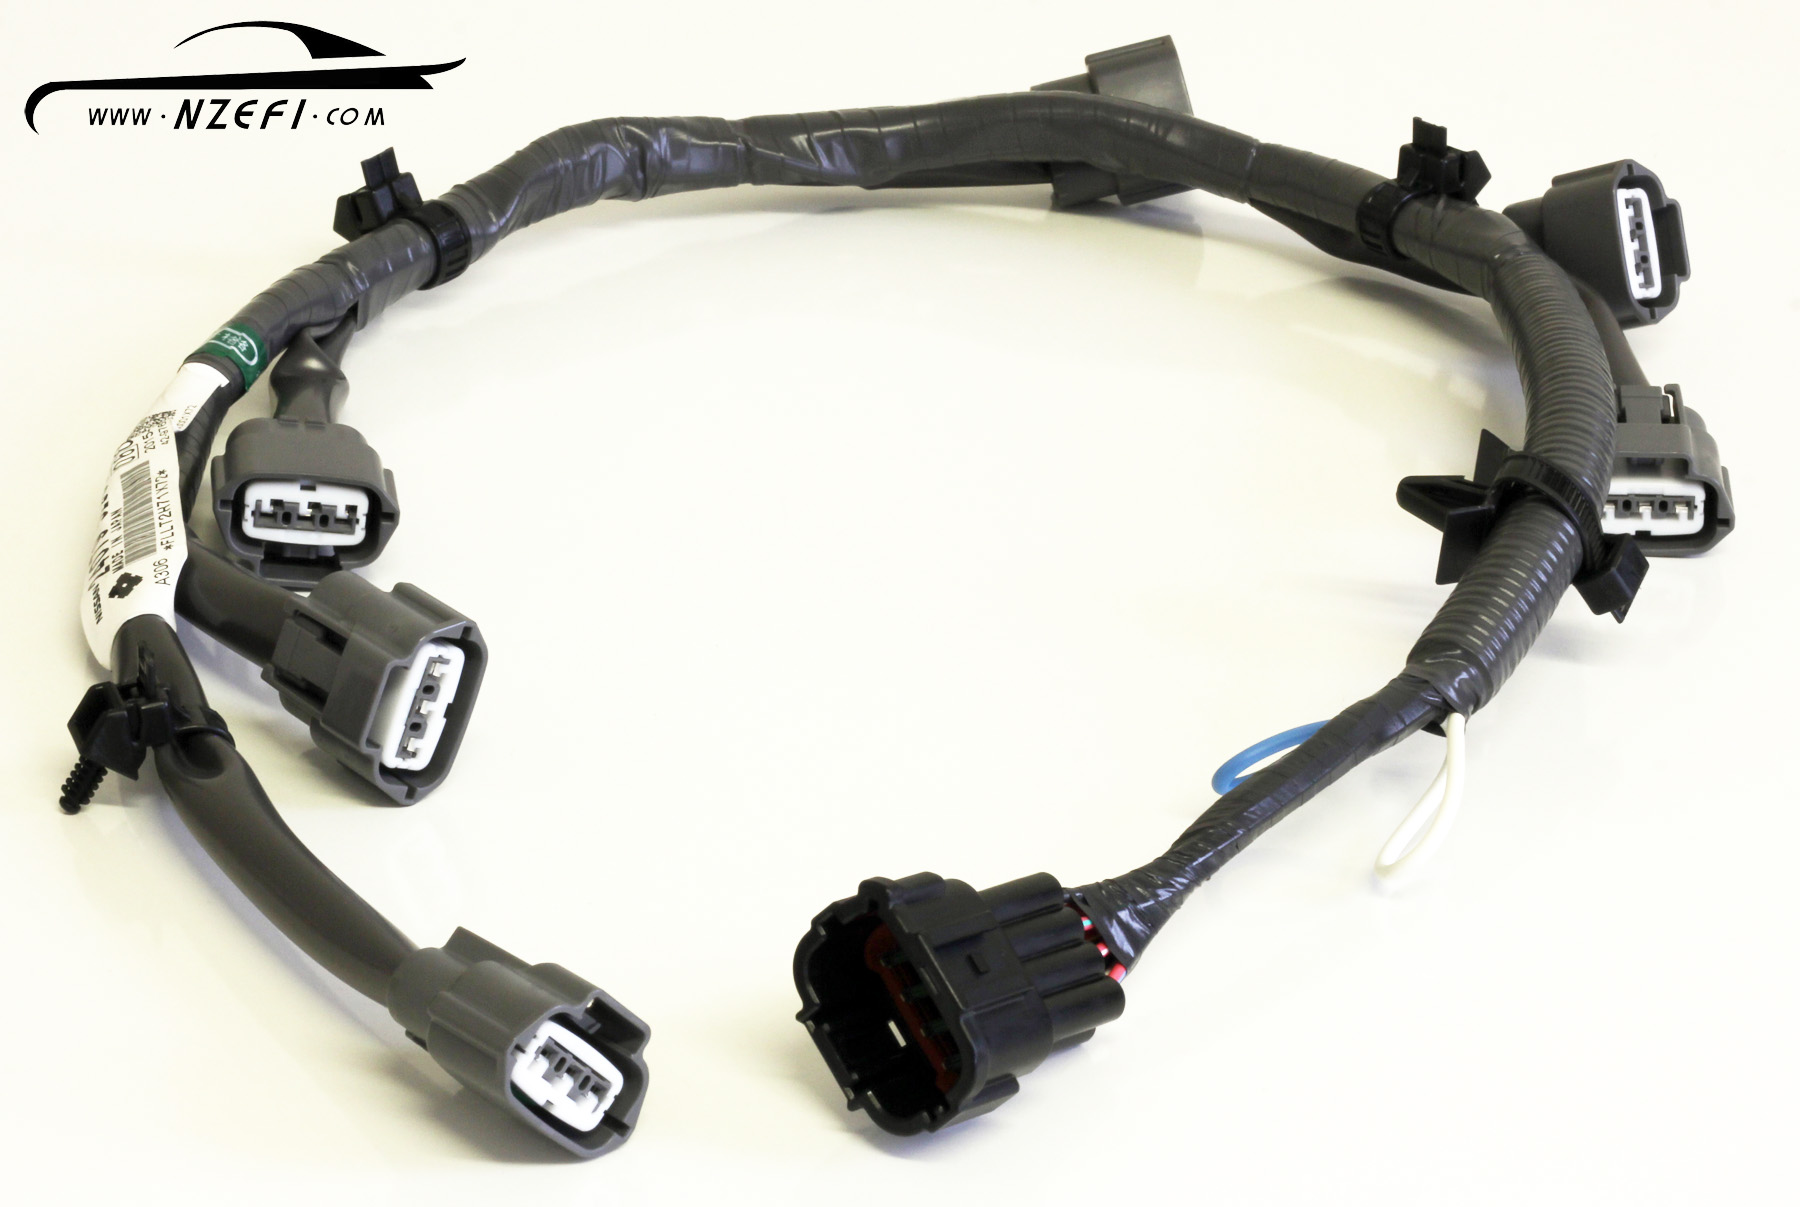 Nissan Skyline R34 Neo Ignition Coil Harness Rb25det Nzefi Rb25 Wiring Plug Diagram Rb25de And Pack Genuine